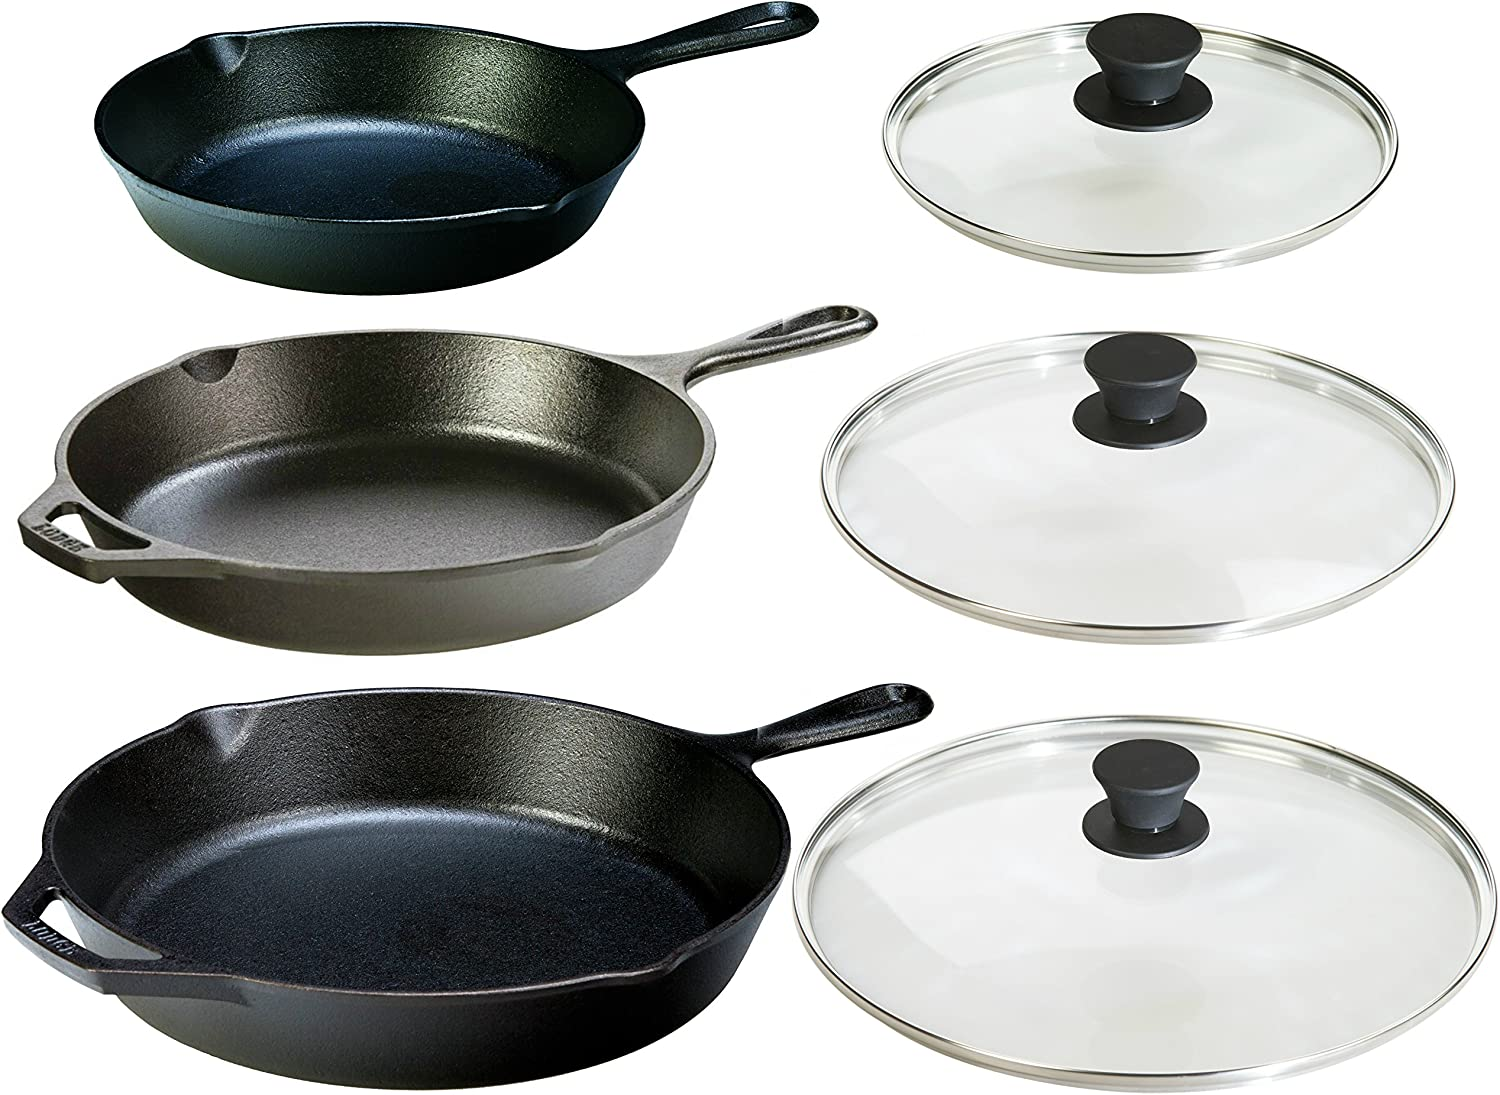 Three Sets of Cast Iron Skillets with Tempered Glass Lids_